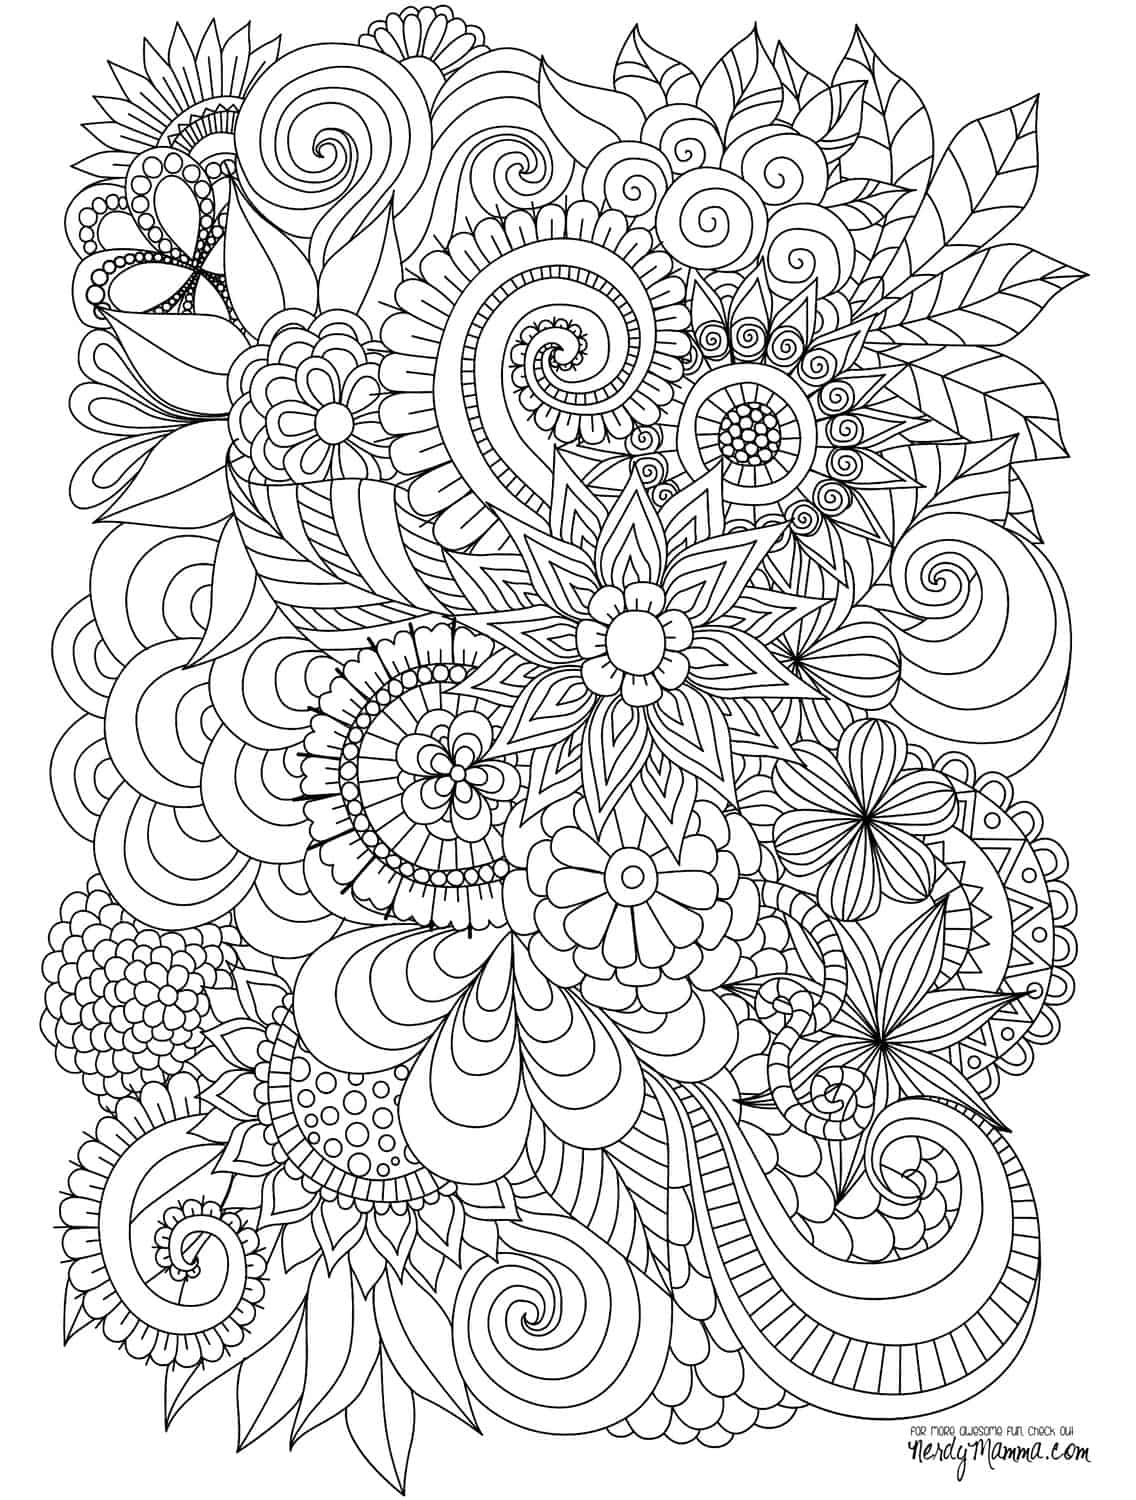 flowers coloring pages pinterest - photo#31